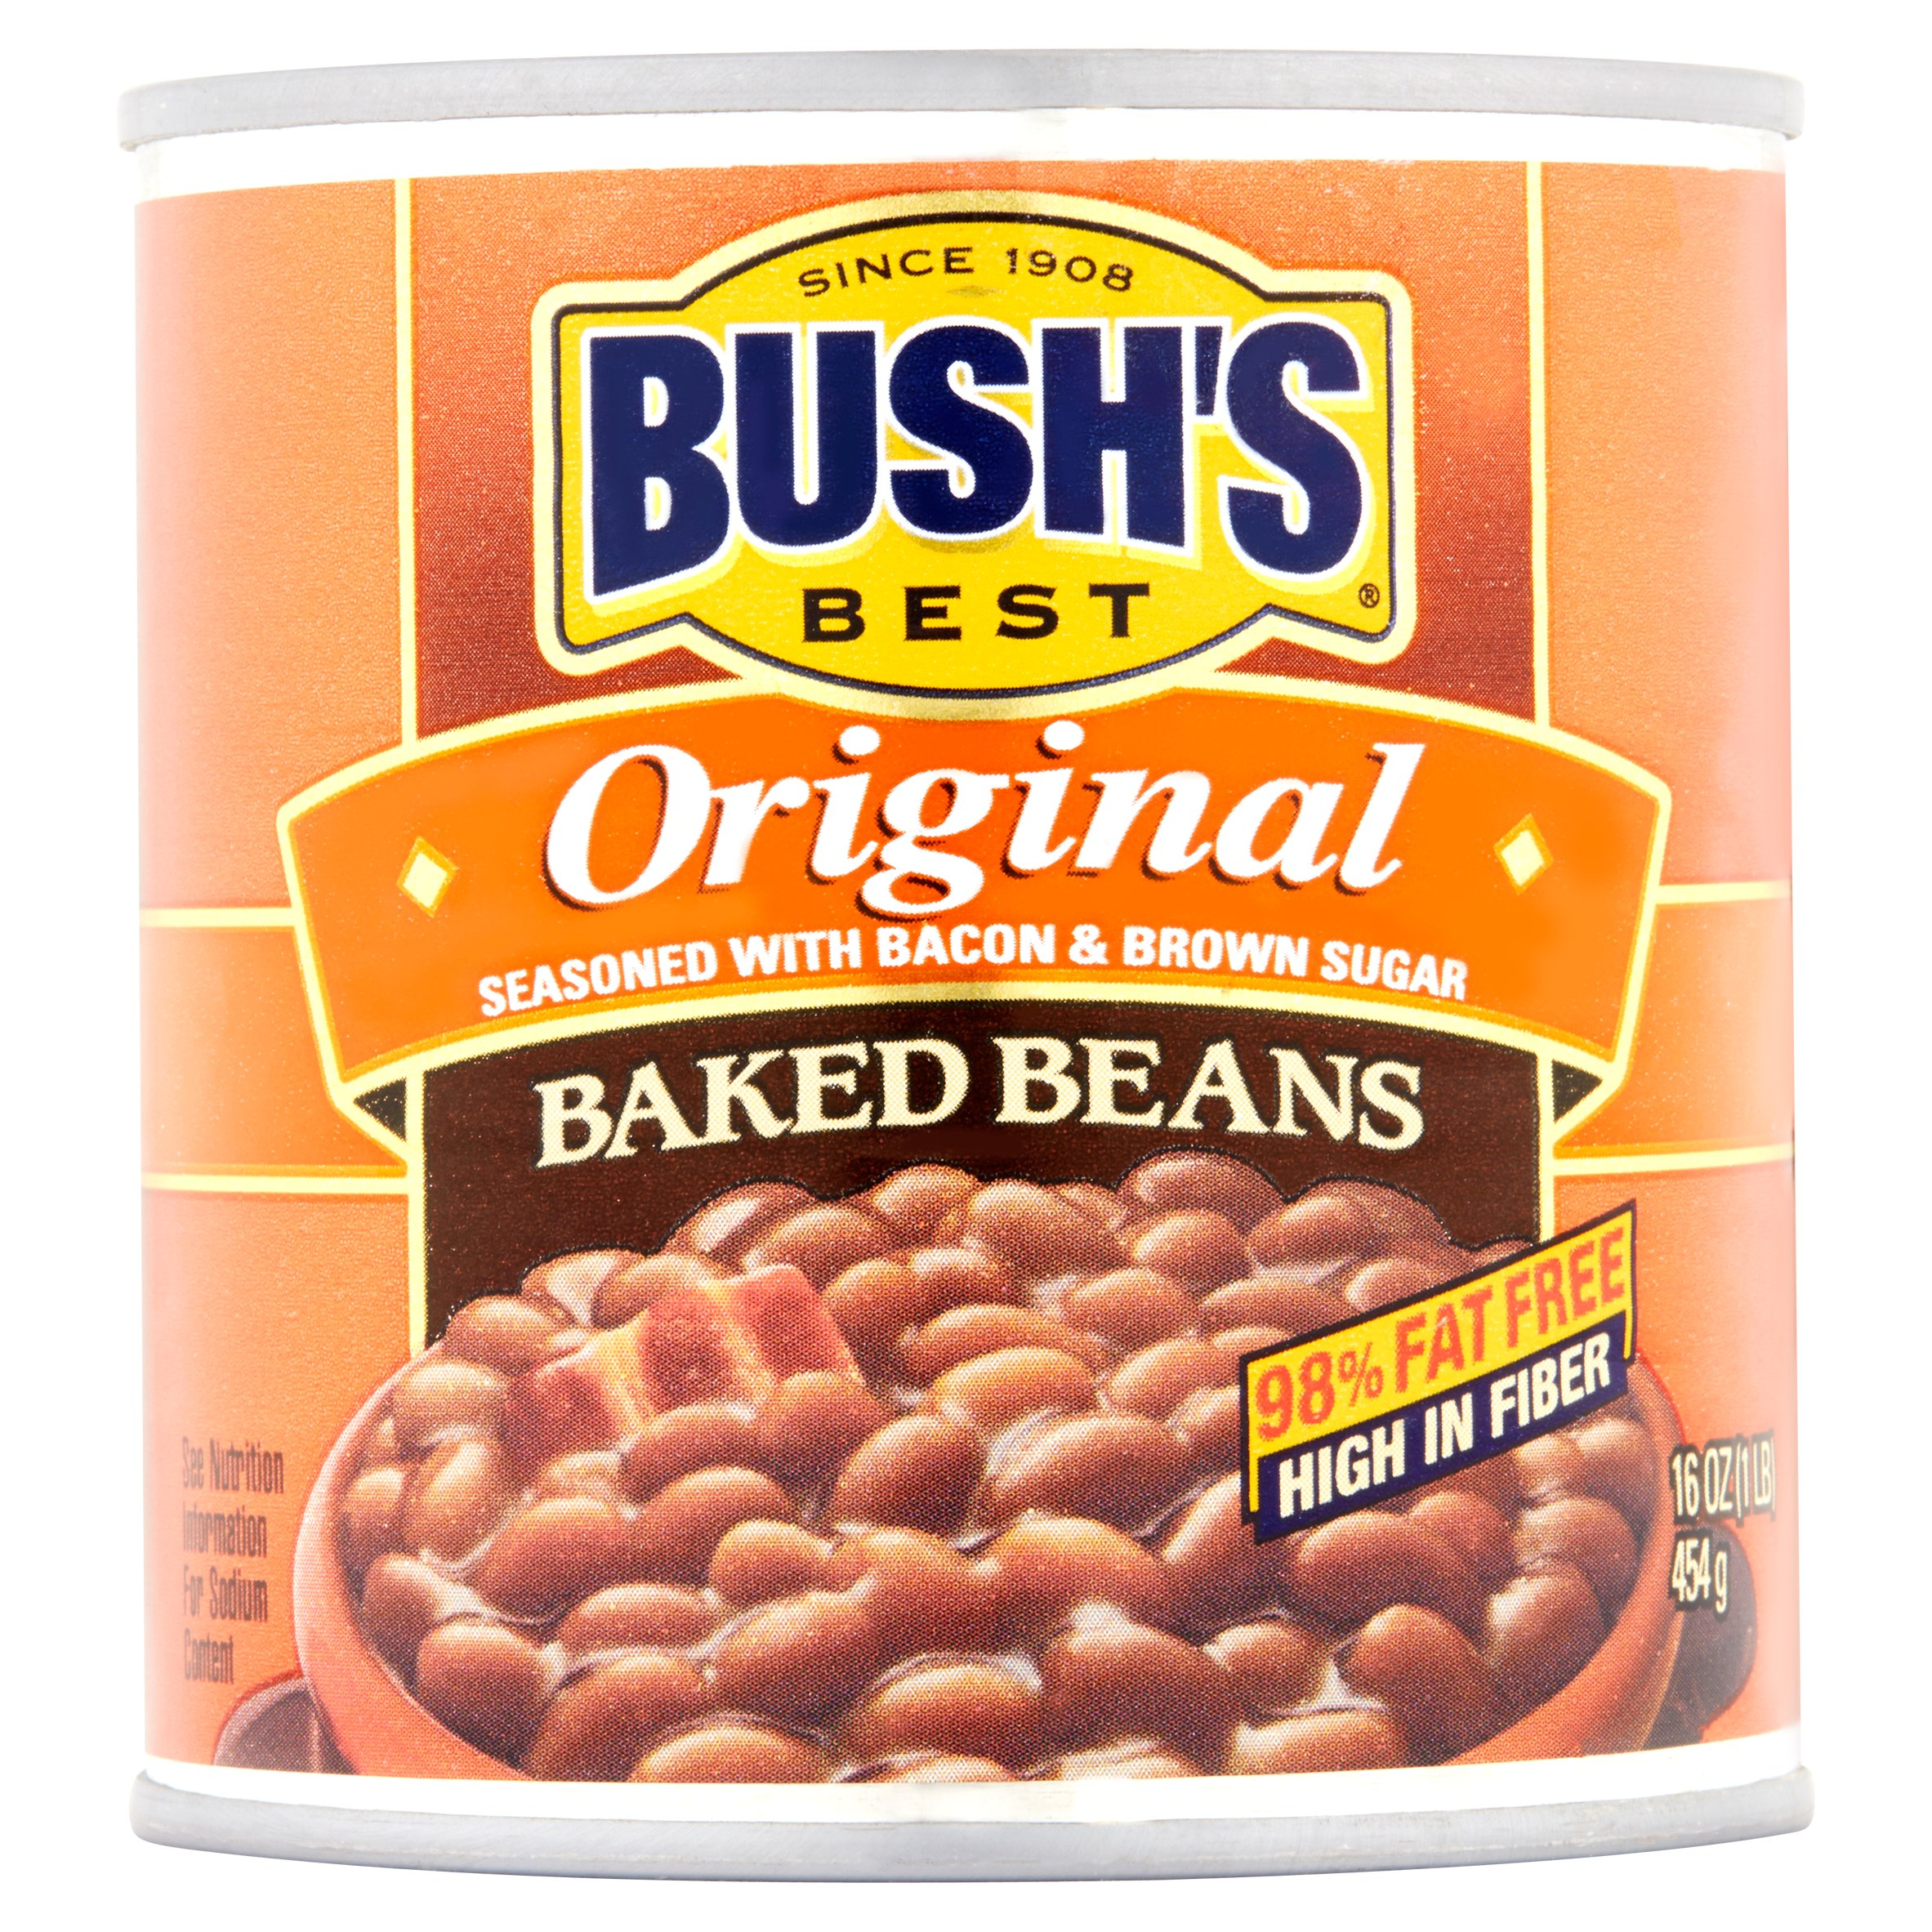 BUSH'S BEST Baked Beans Original, 16.0 OZ by Bush Brothers & Company